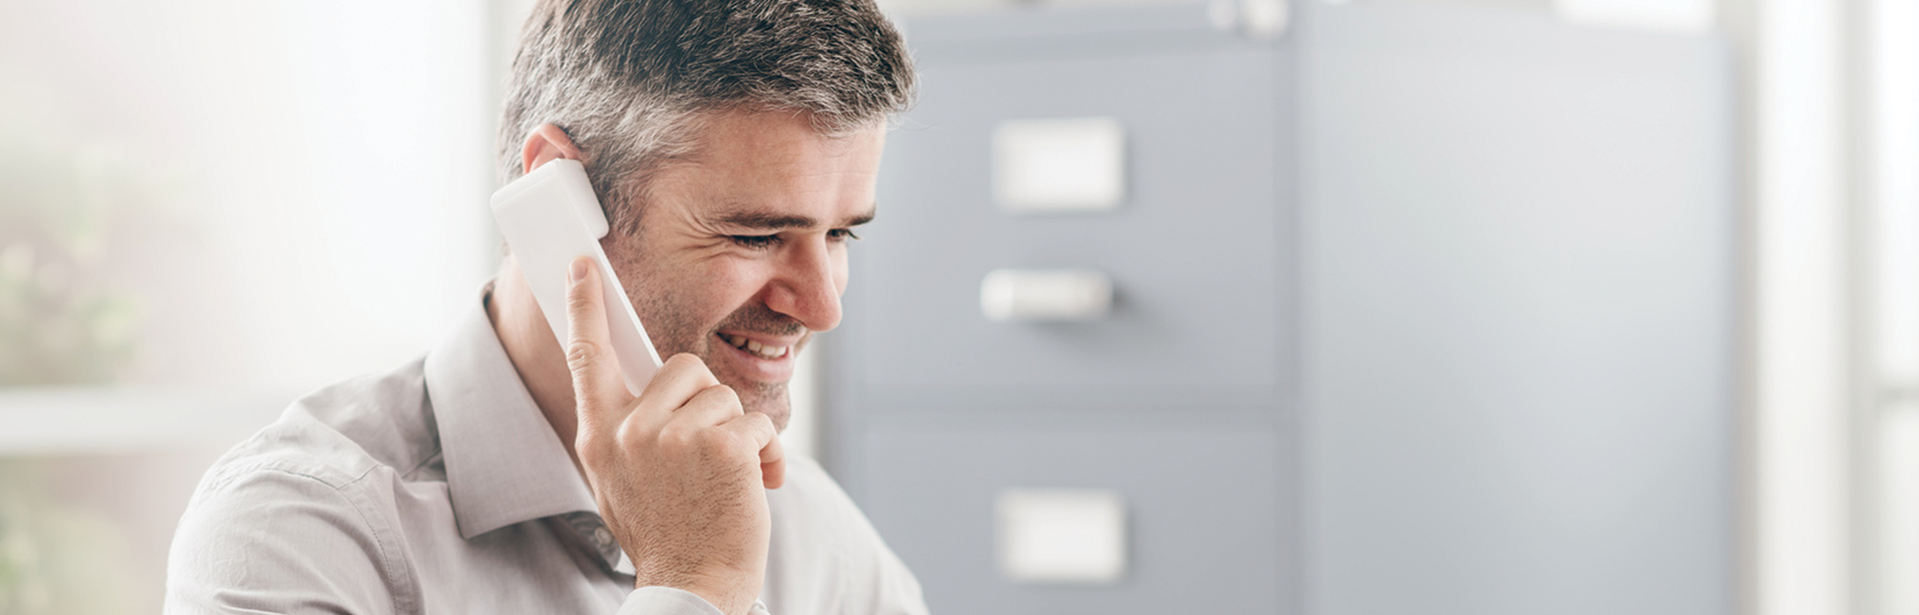 Commander Phone Systems - Expert Telecommunications, Melbourne